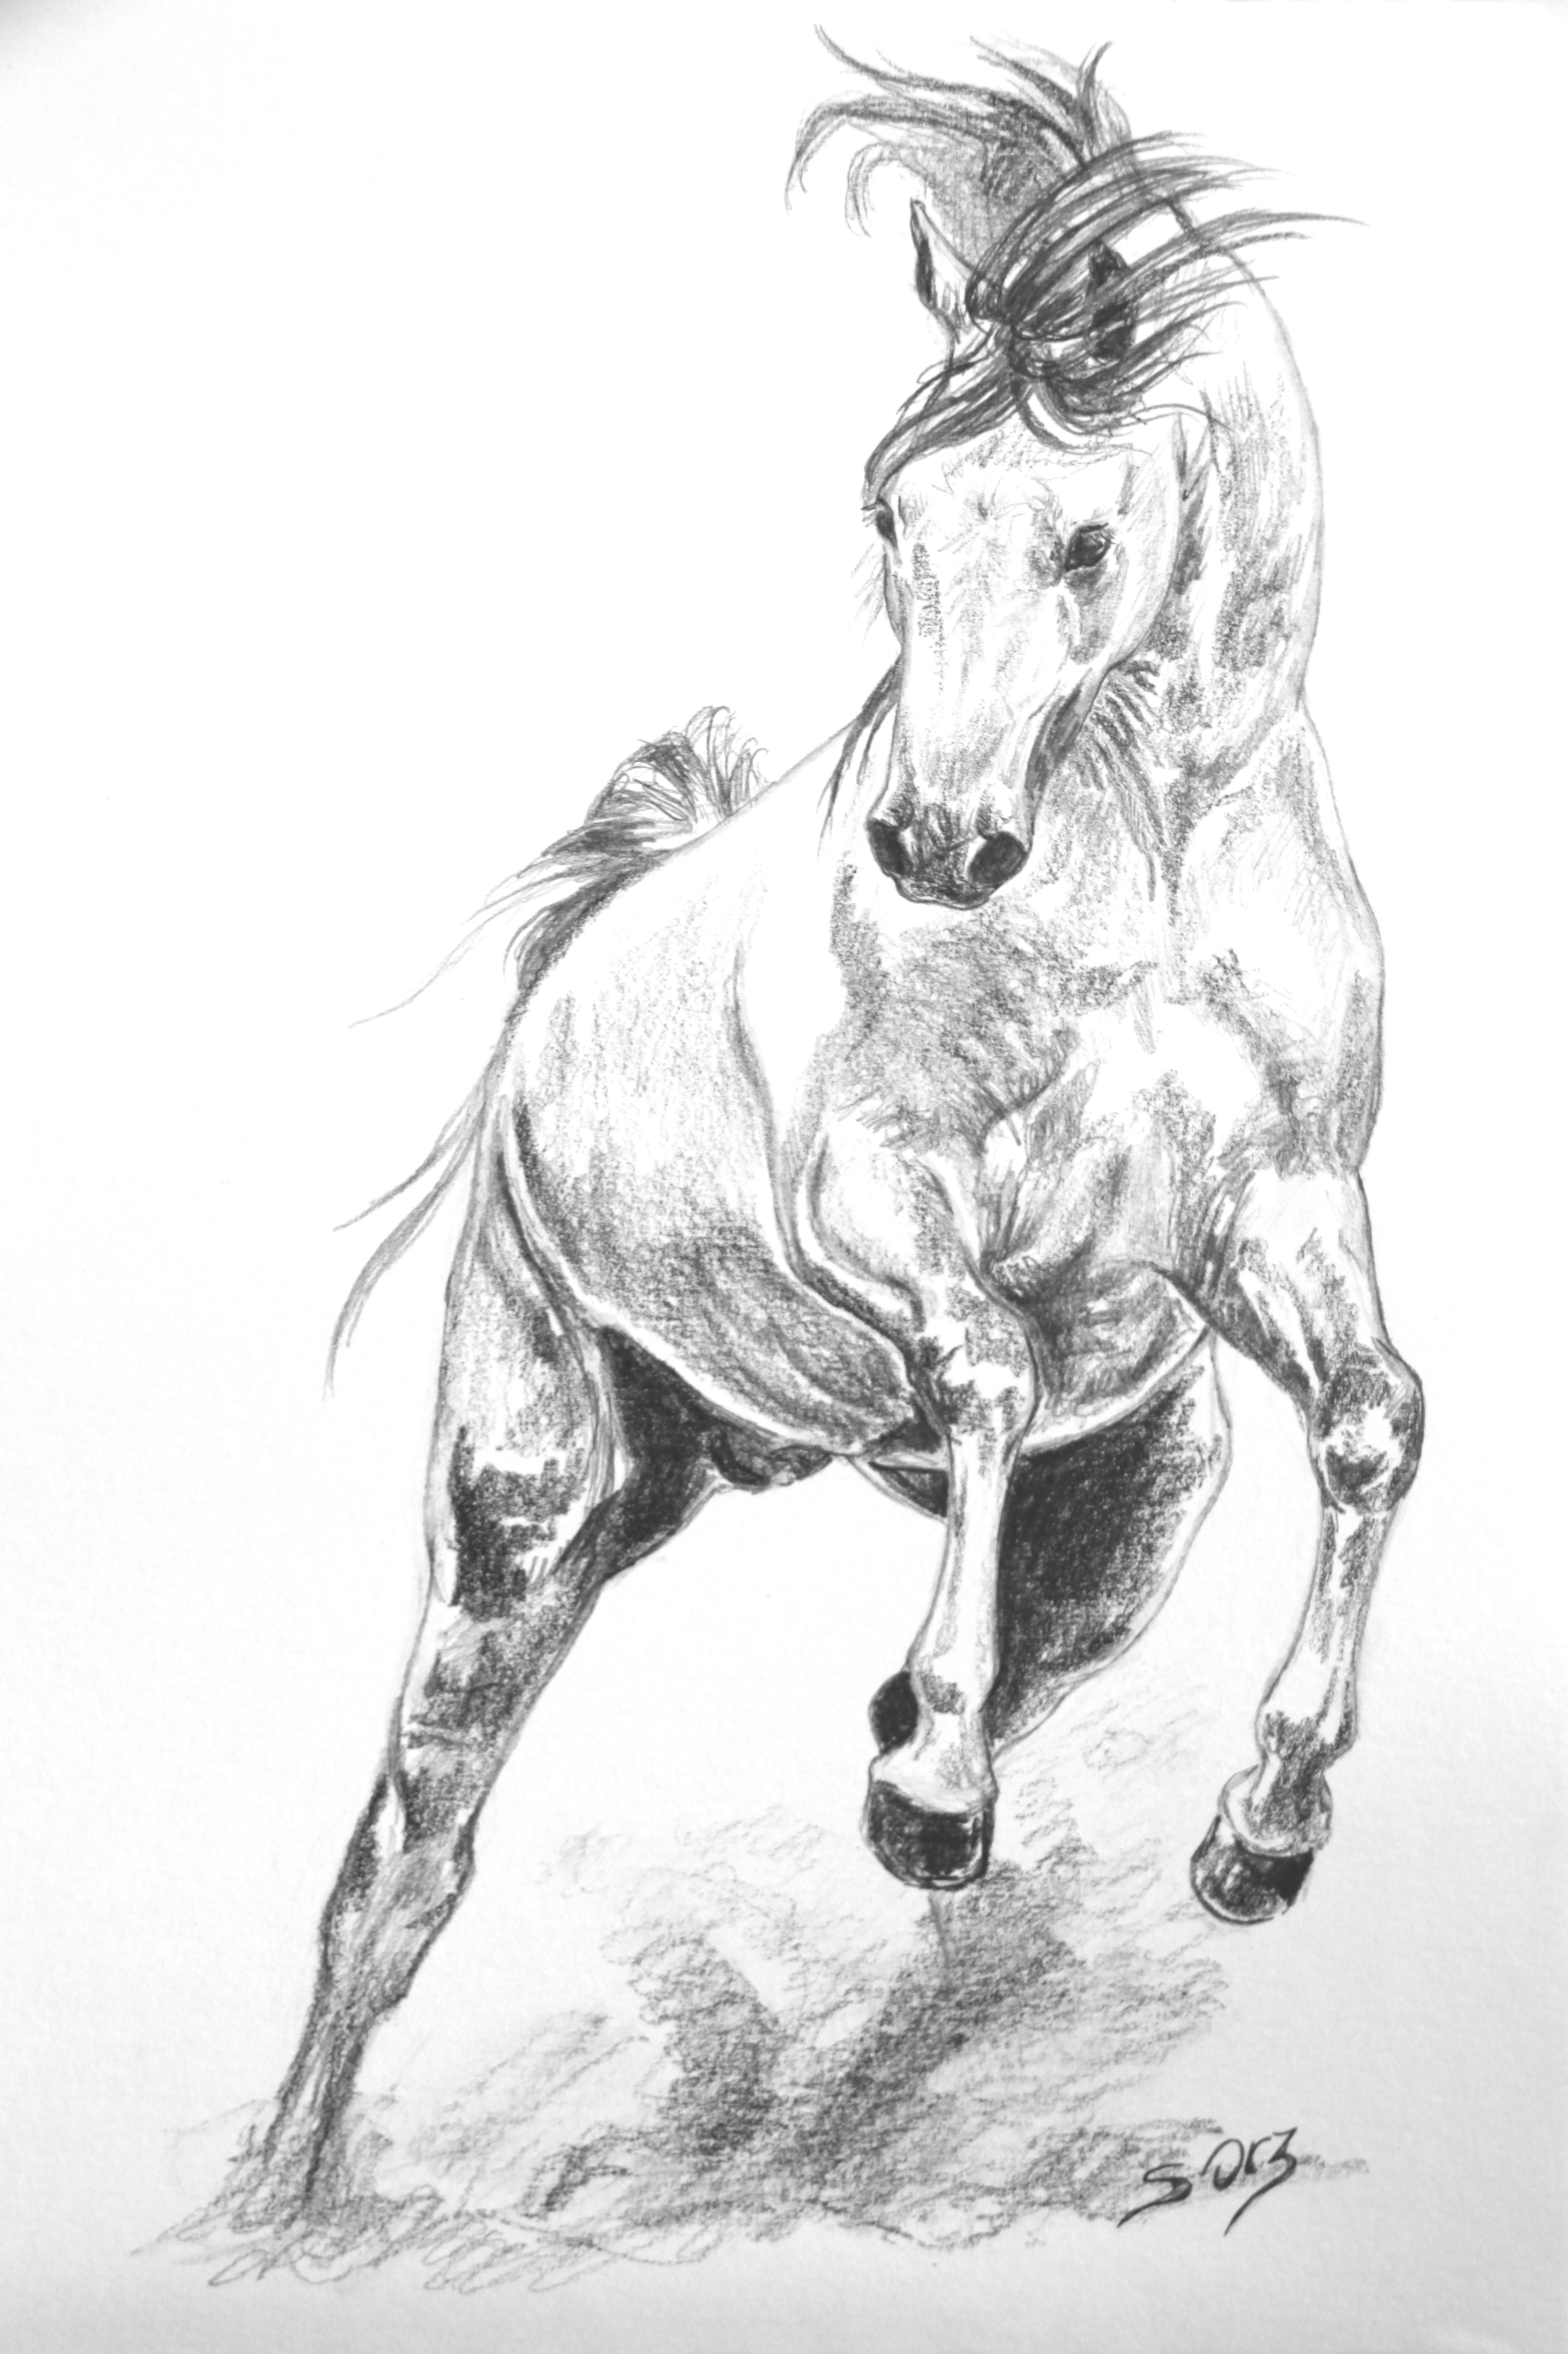 Horses drawings in pencil step by step - photo#26